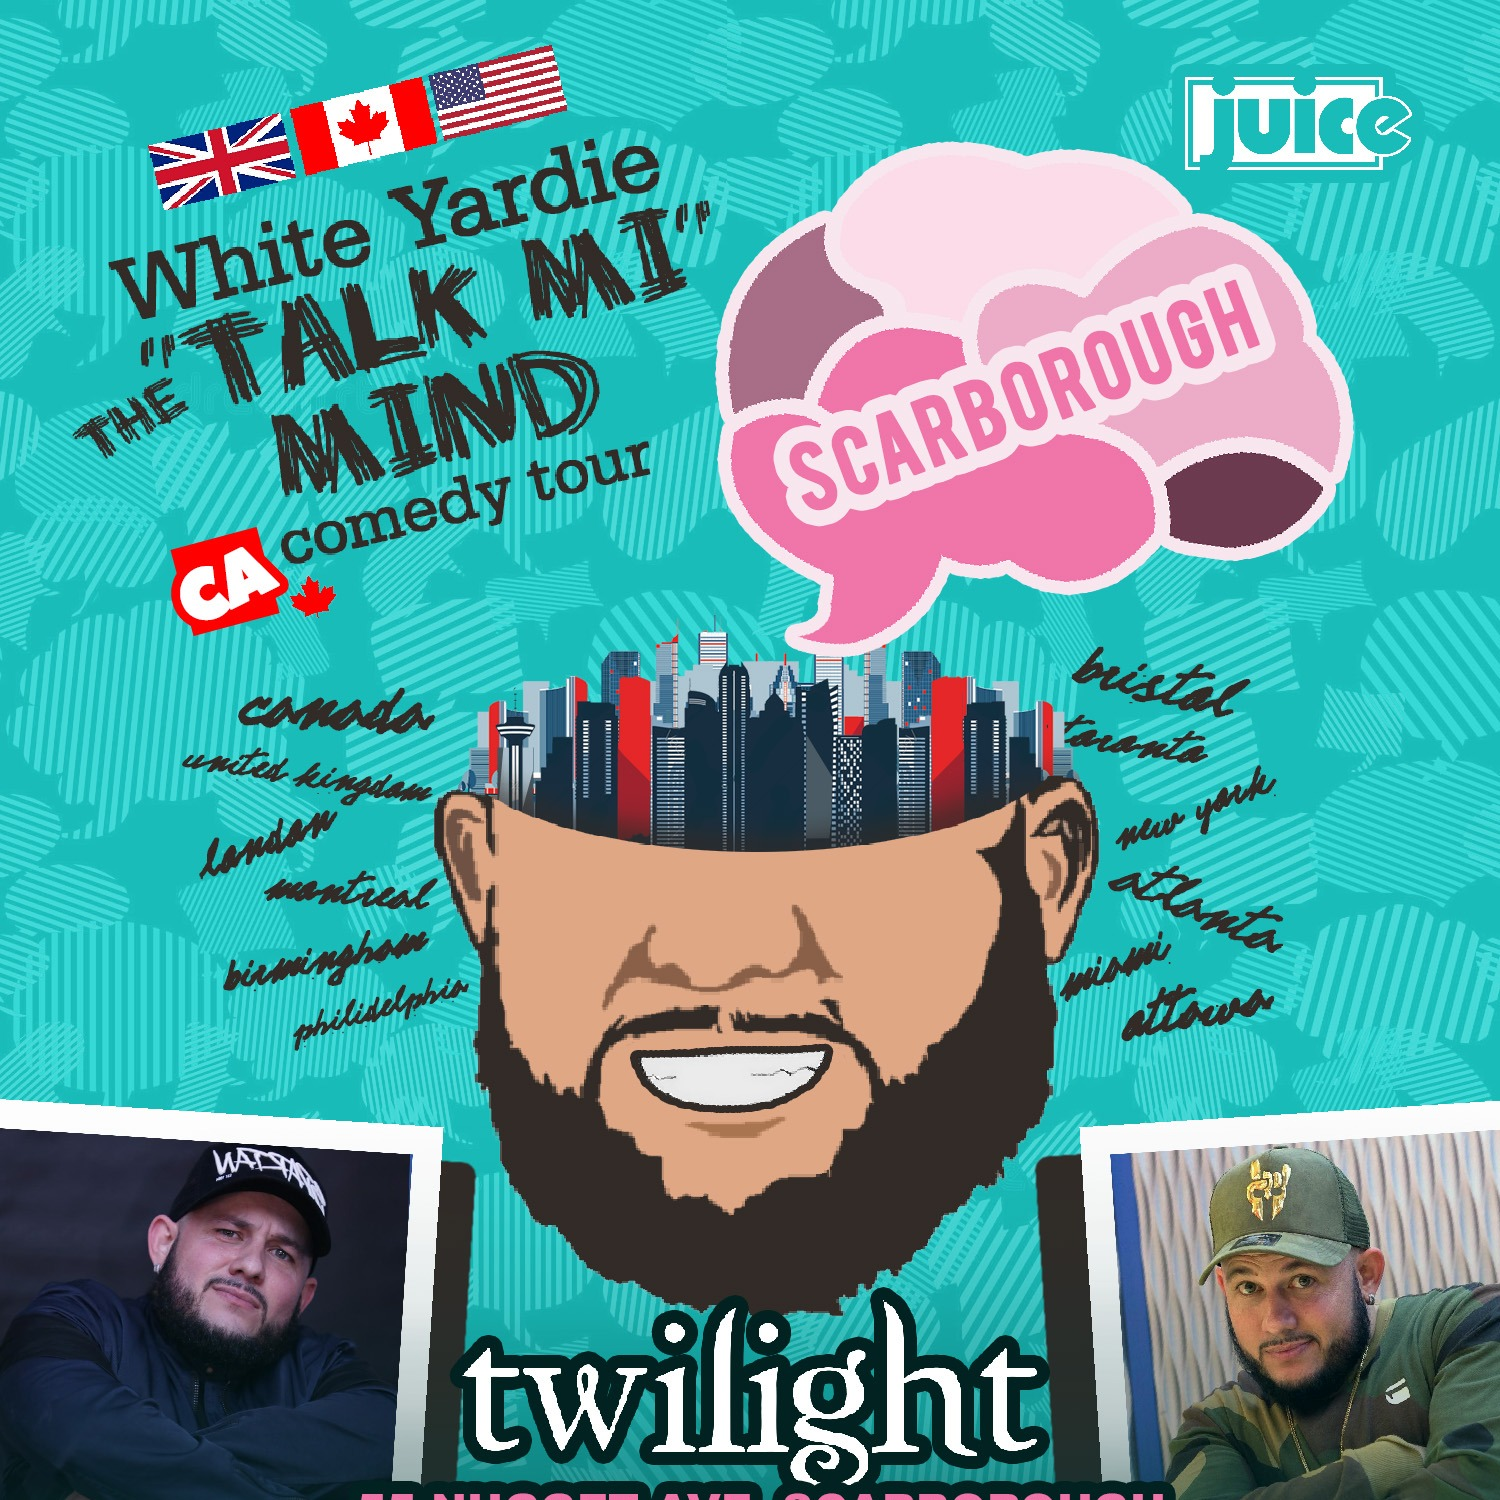 SCARBOROUGH - JUICE Comedy presents WHITE YARDIE'S 'Talk Mi Mind'